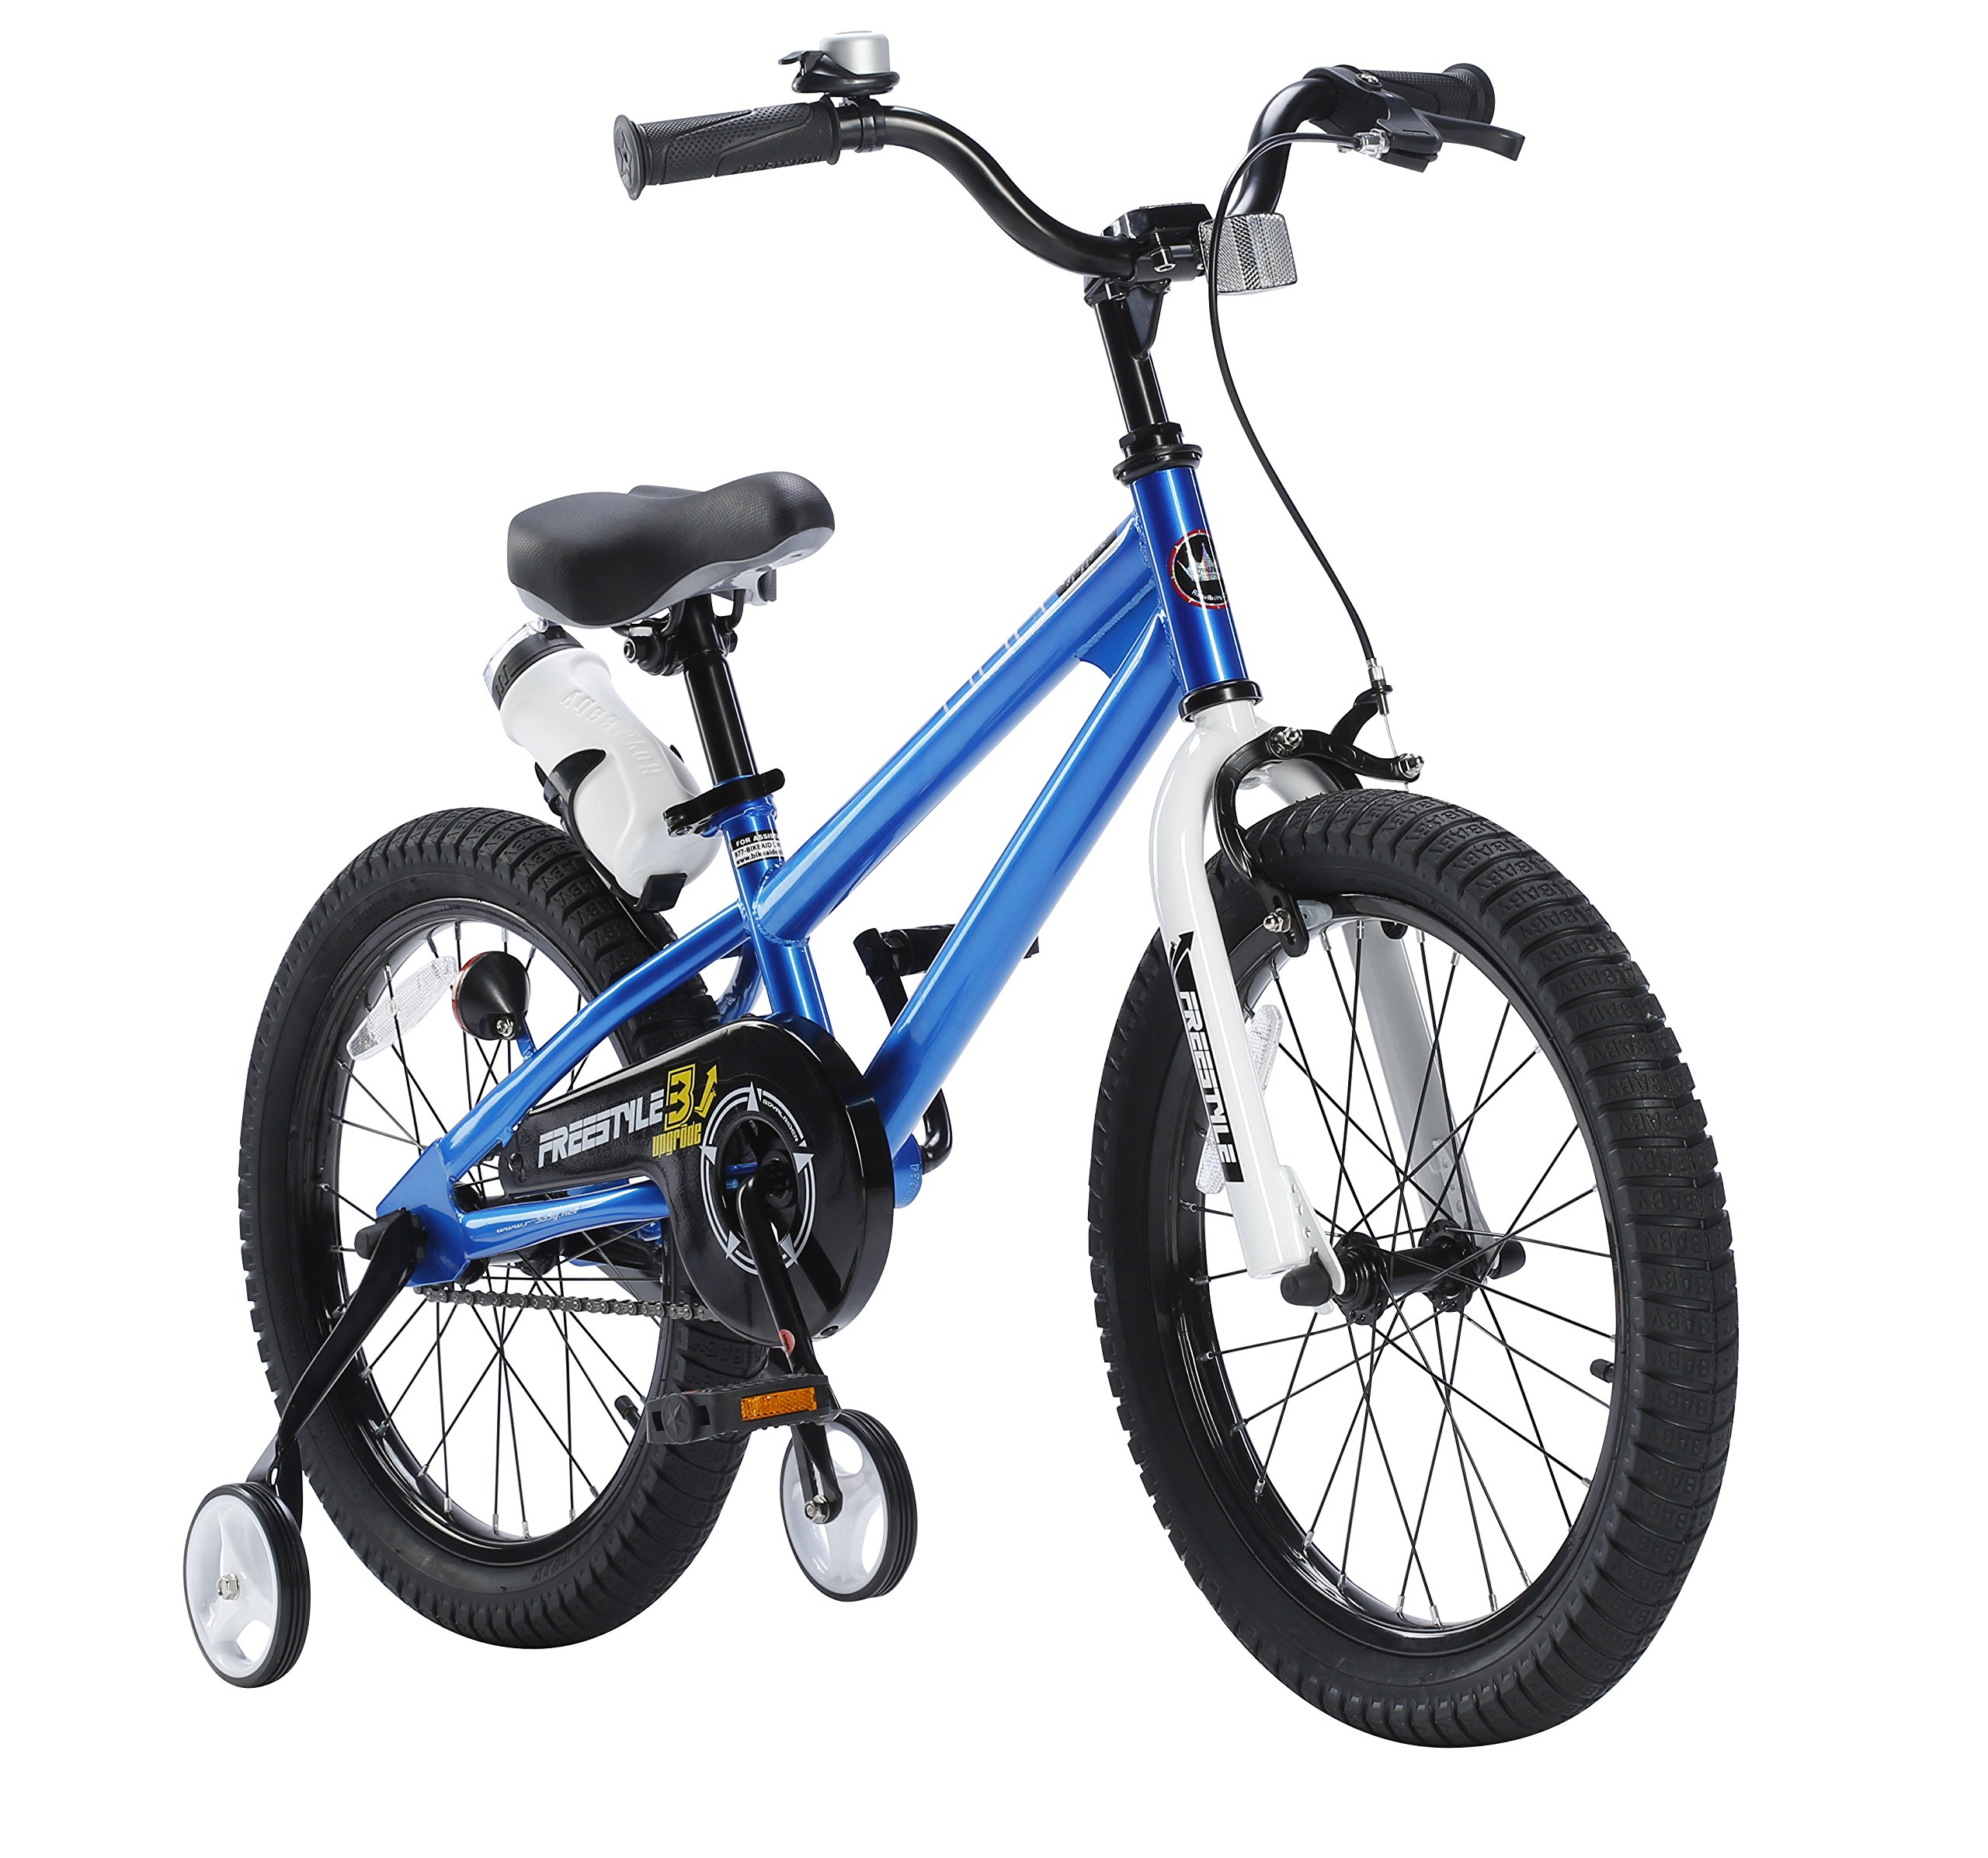 RoyalBaby BMX Freestyle Kids Bike, Boy's Bikes and Girl's Bikes with training wheels, 12 inch, 14 inch, 16 inch, 18 inch, Gifts for children by Royalbaby (Image #3)